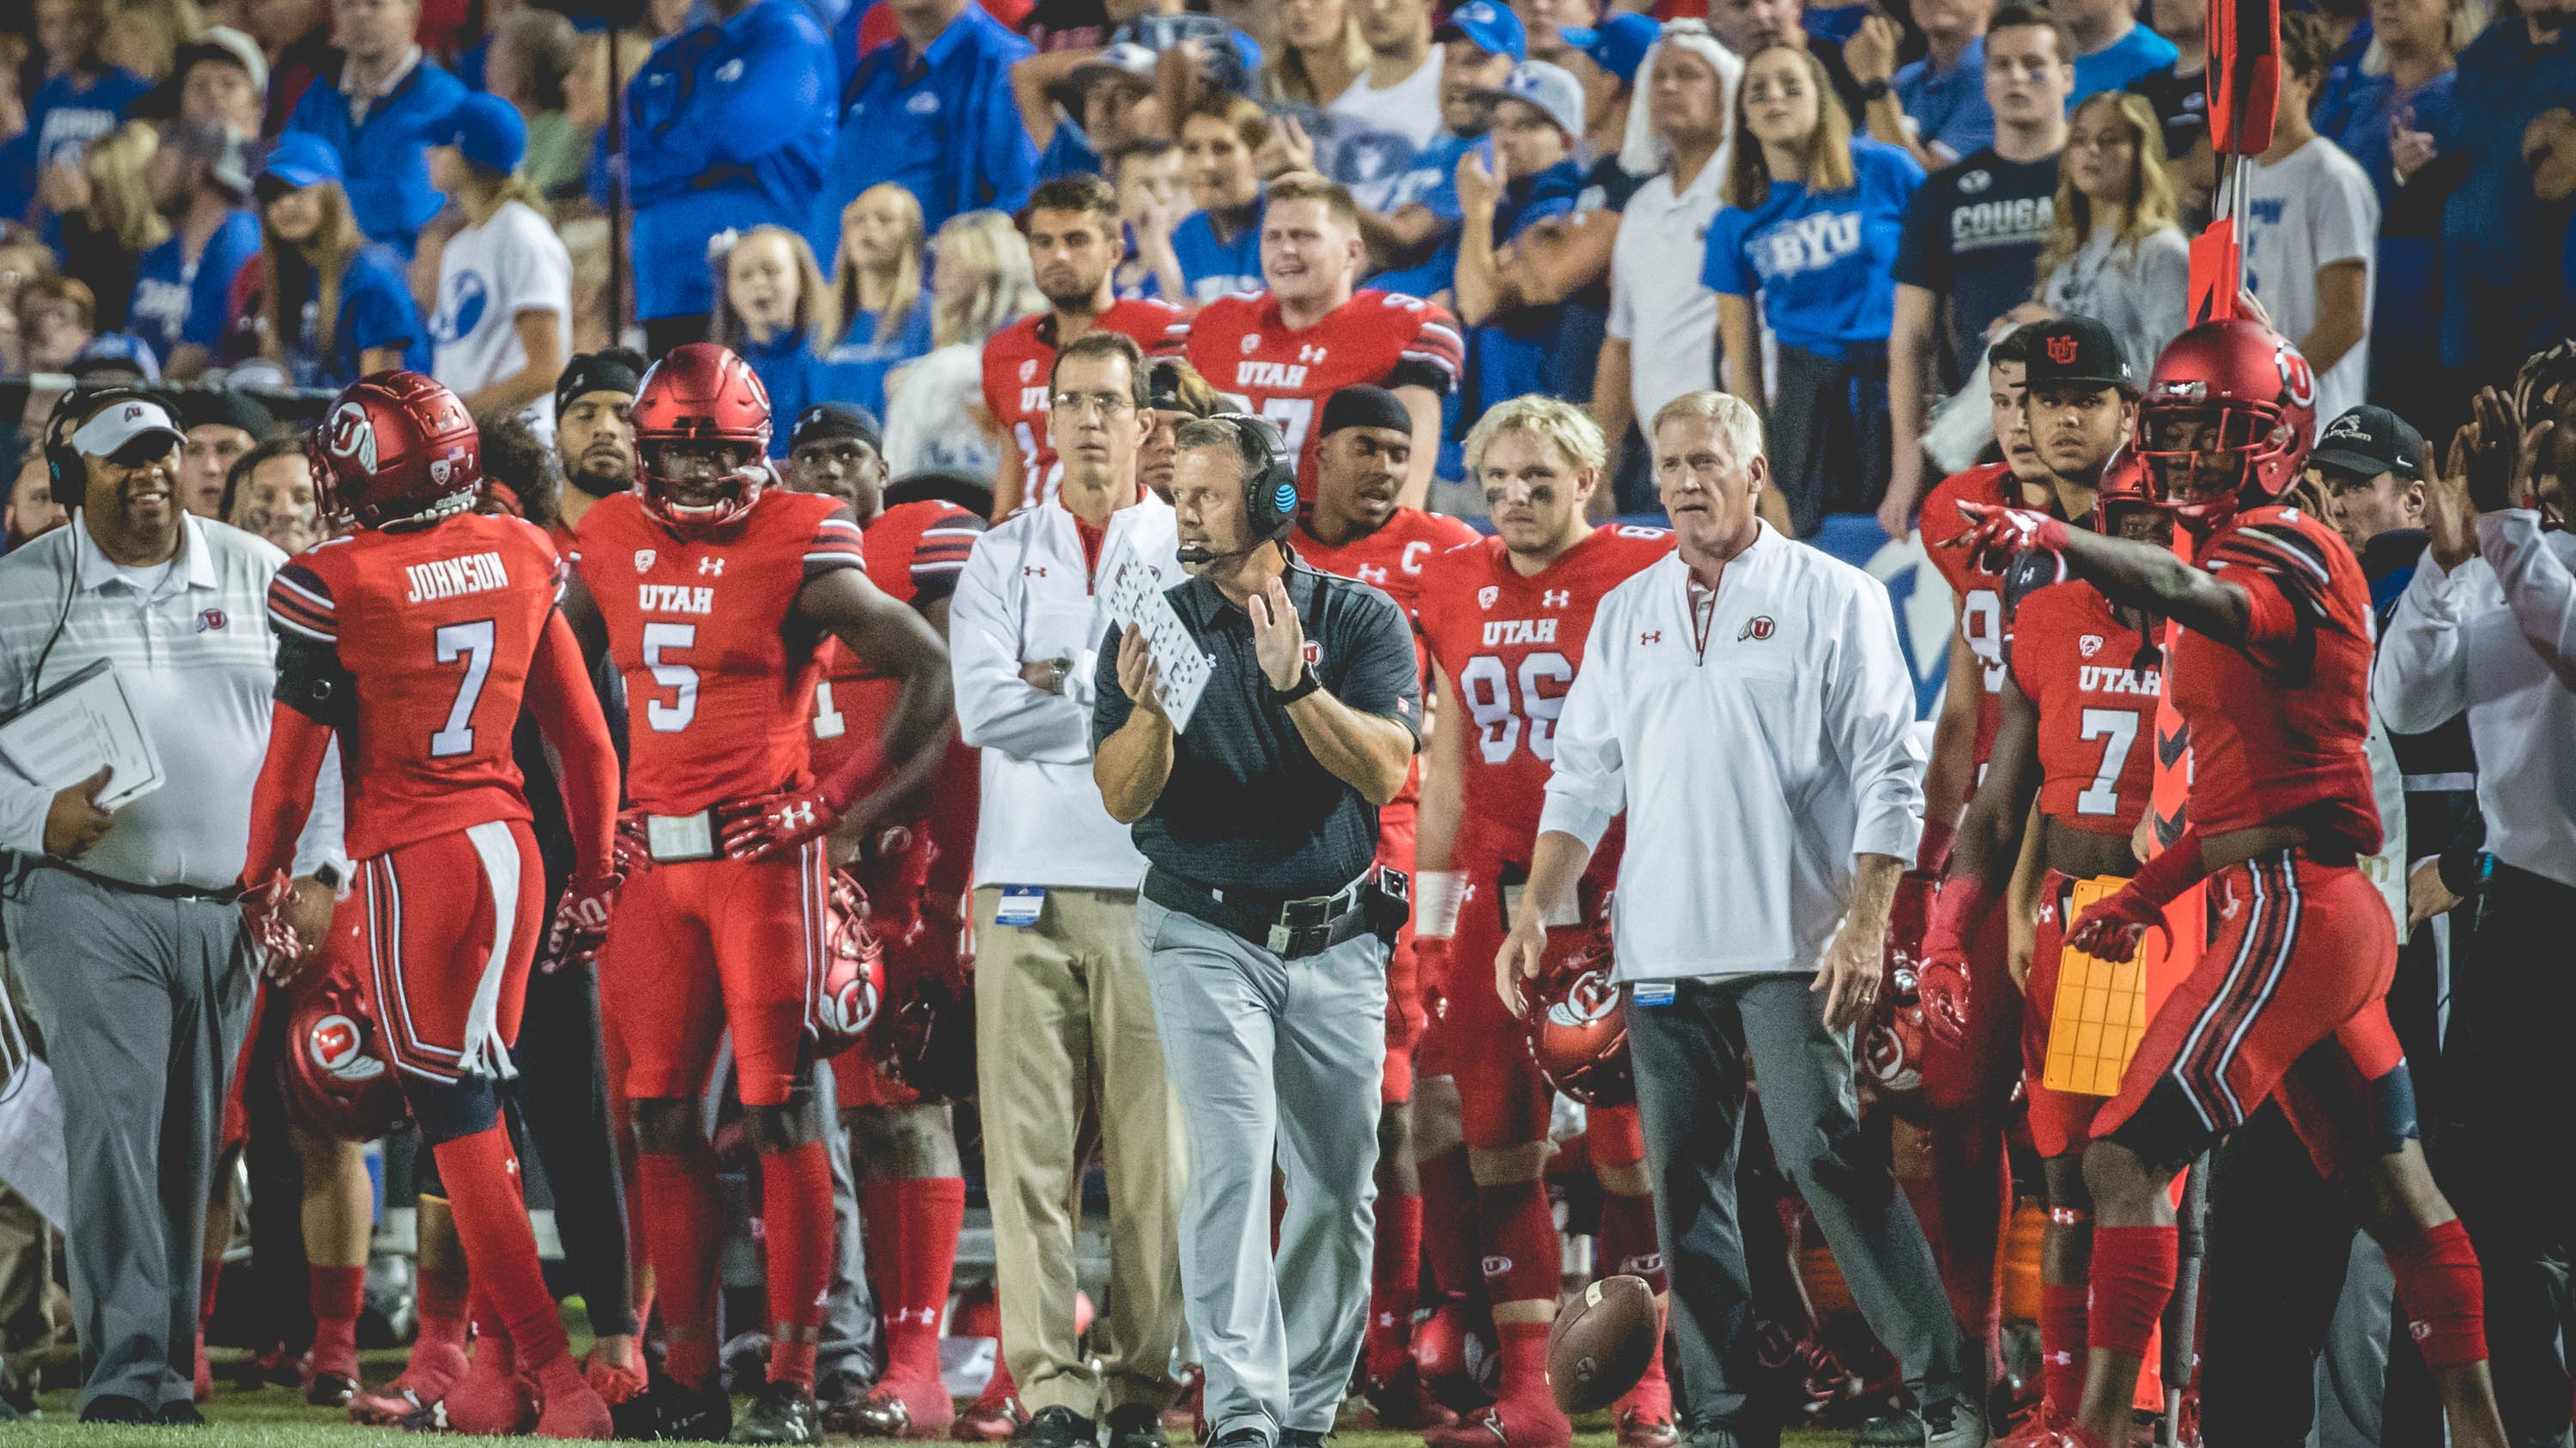 Ute Football Camps Open for Registration - University of